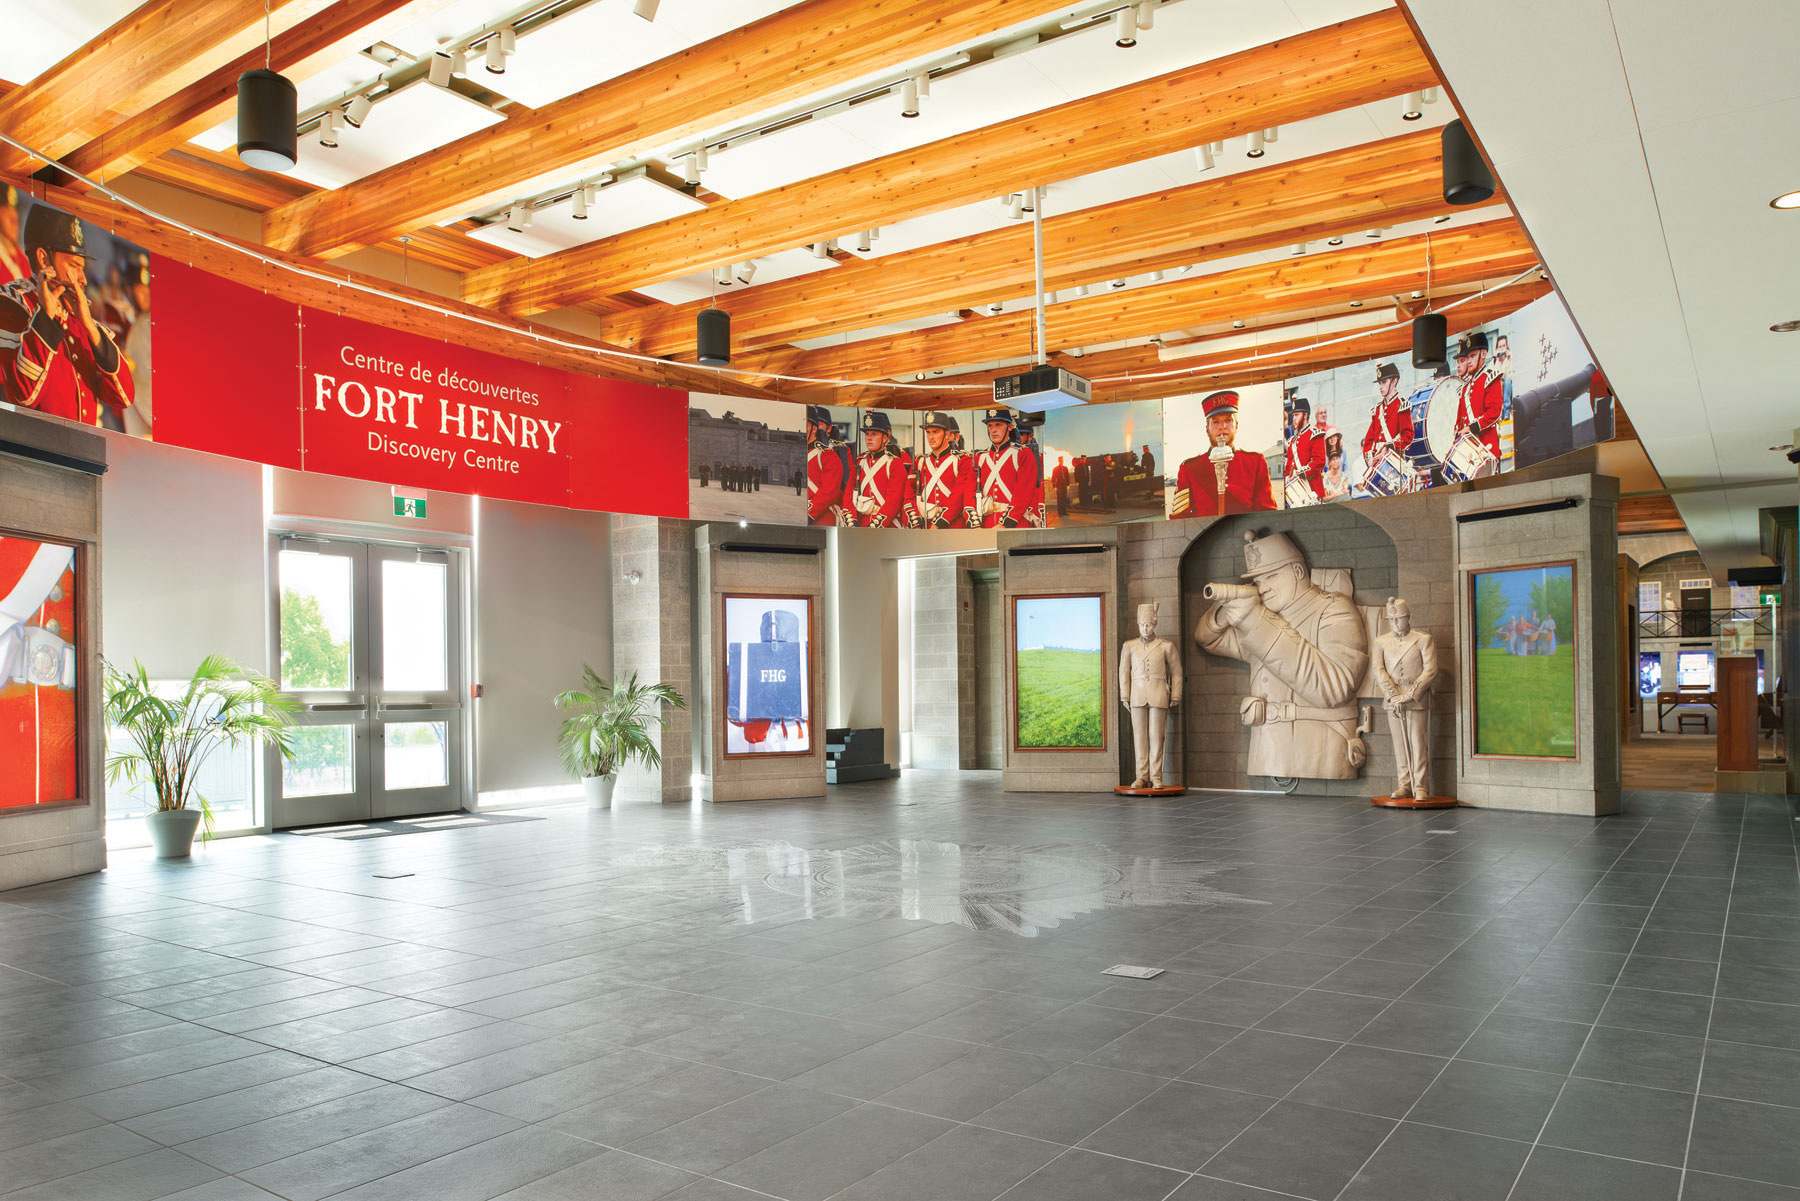 Entry Lobby with photos and relief of soldiers and wood rafter ceilings